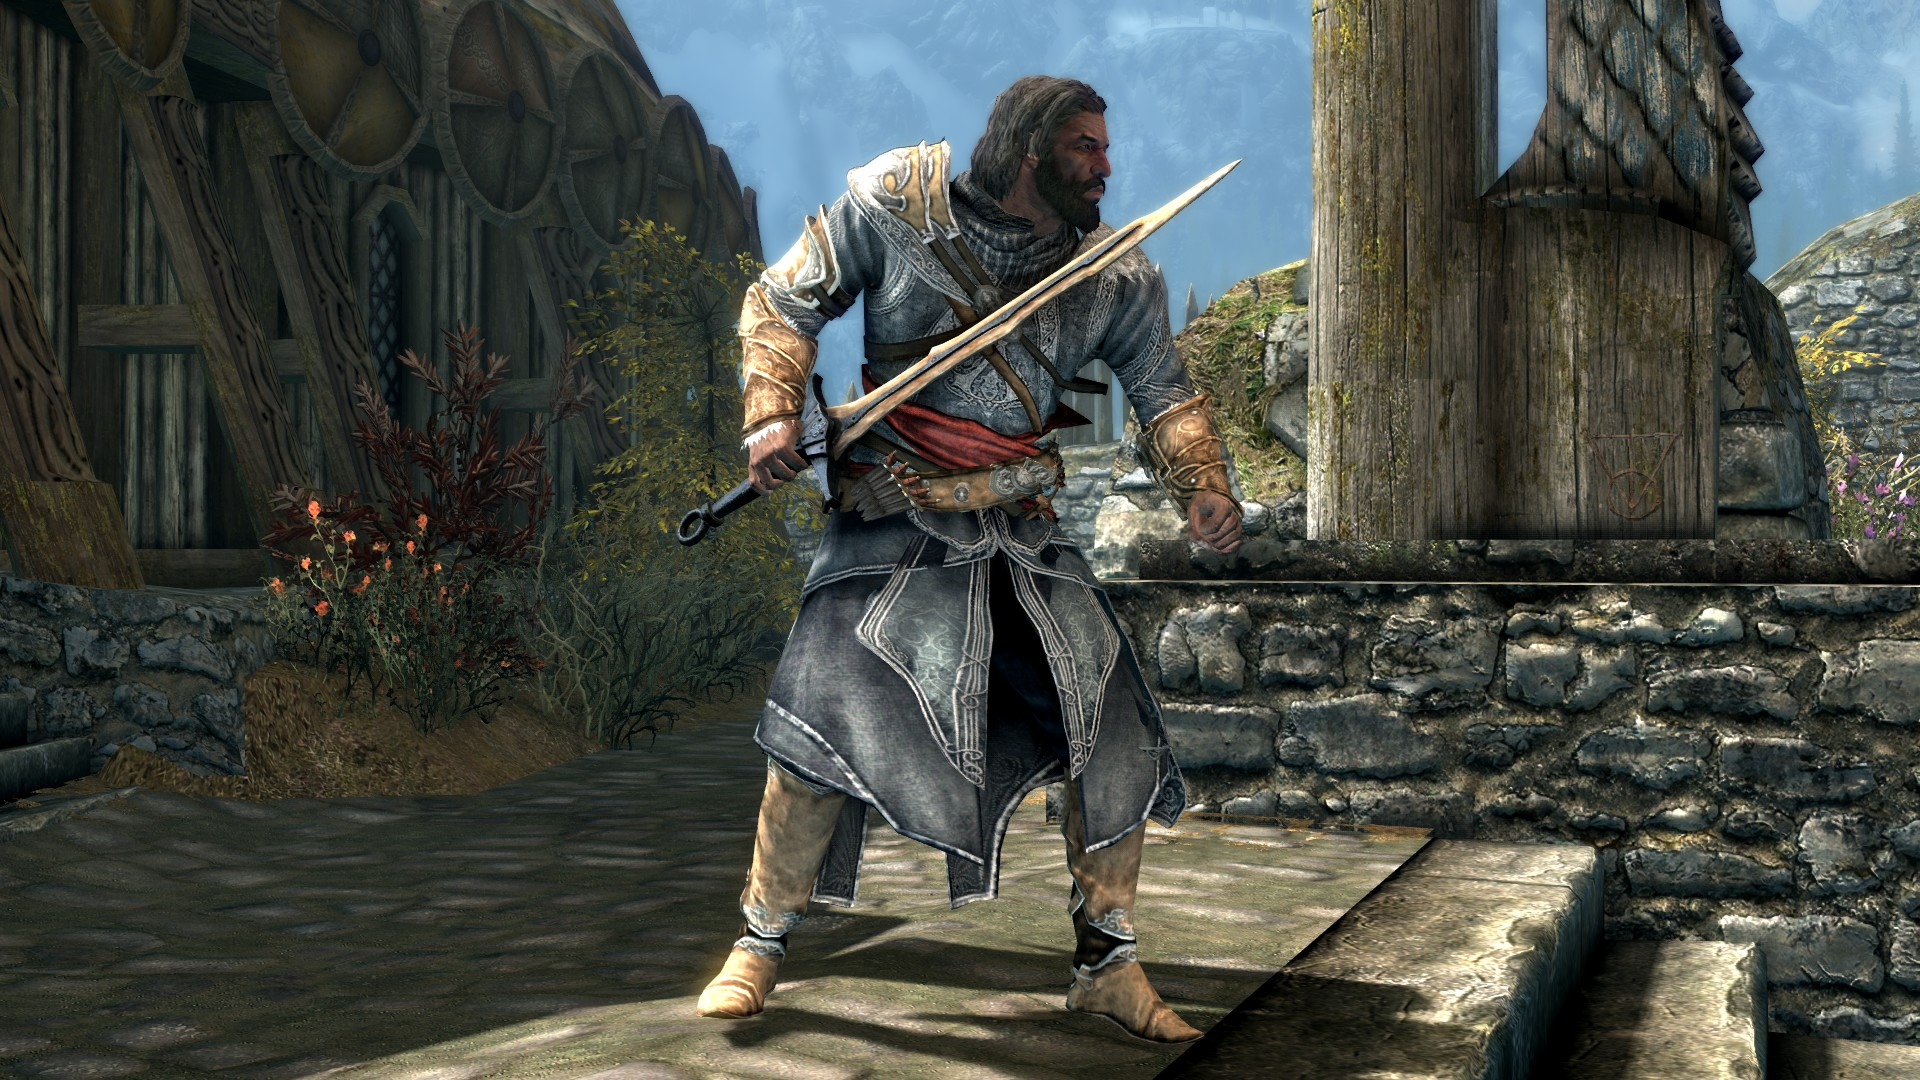 Ezio S Armor From Assassin S Creed Revelations At Skyrim Special